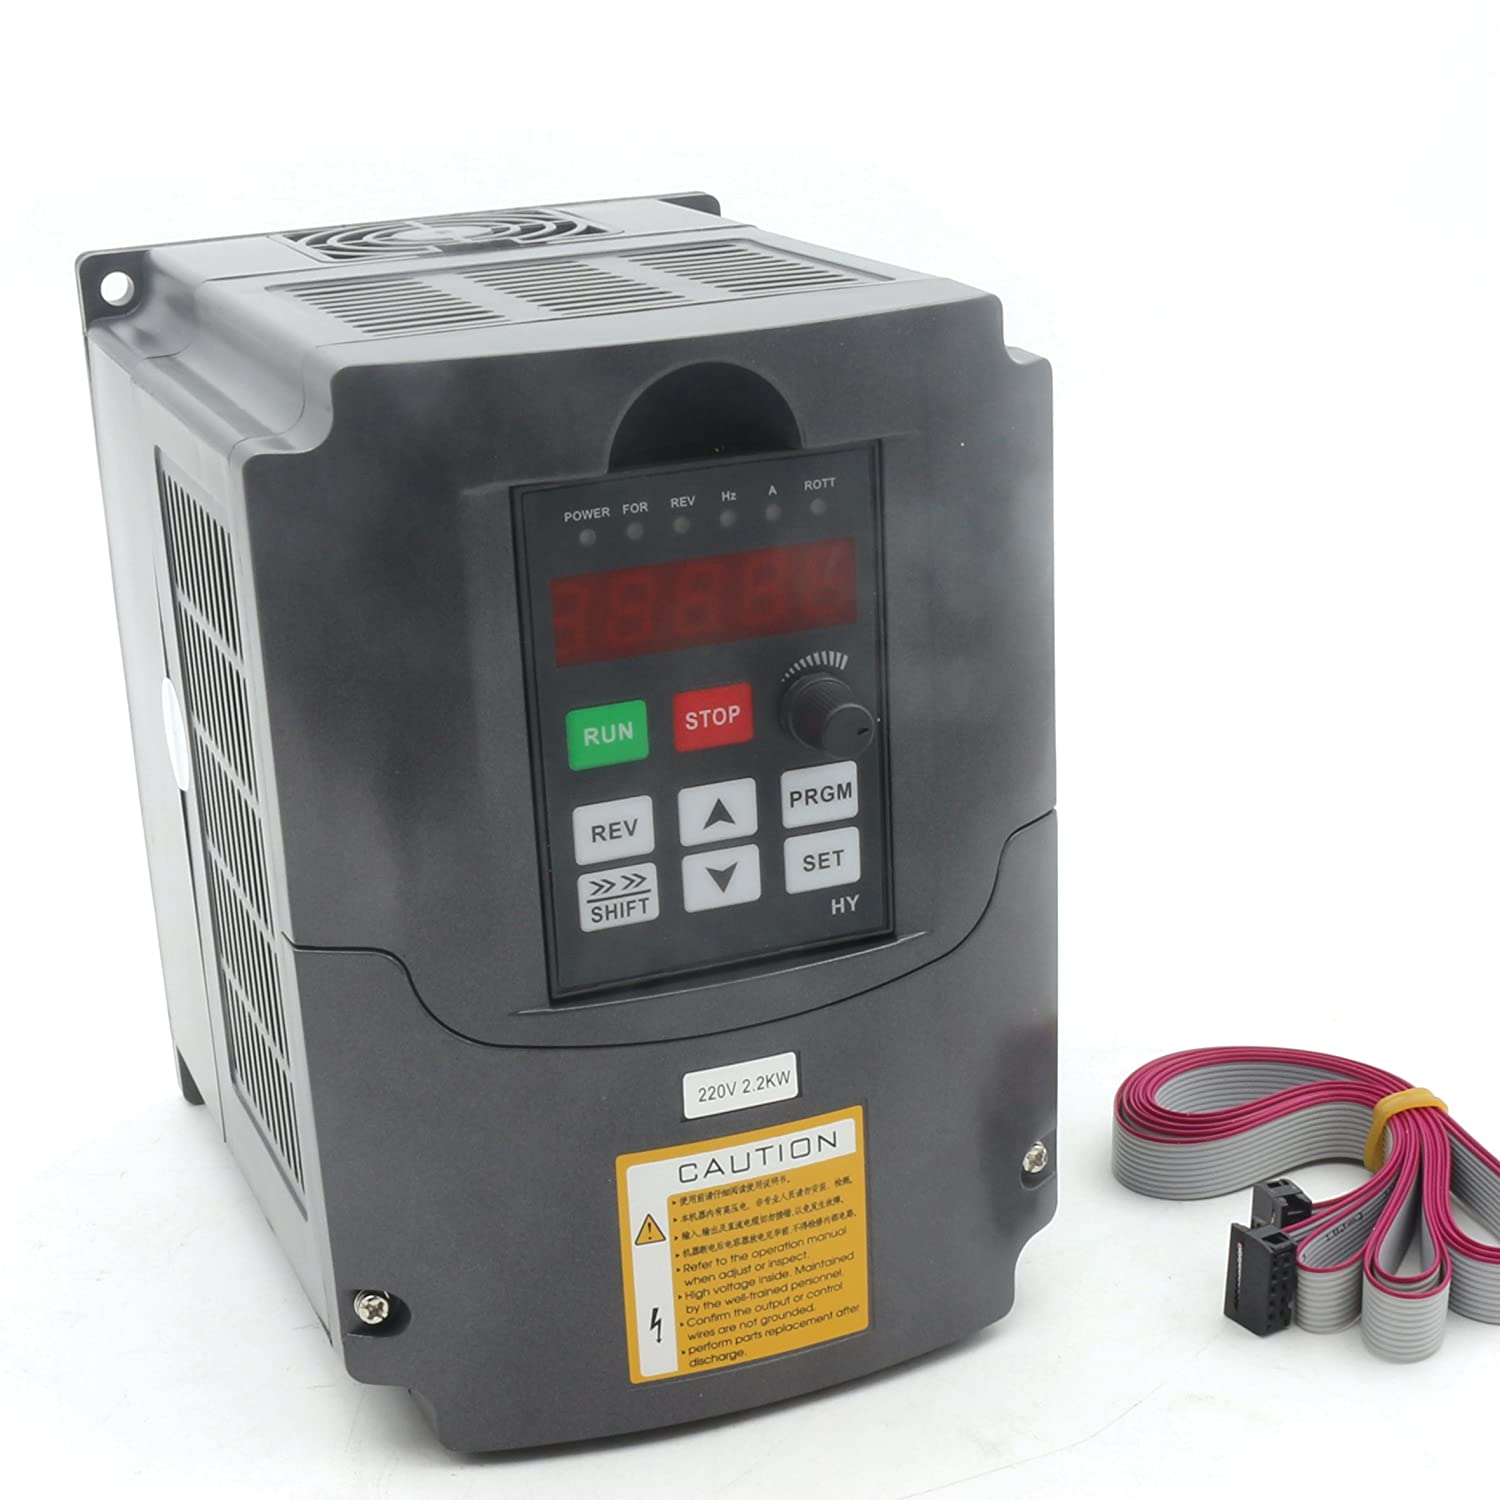 RATTMMOTOR CNC Spindle Motor Speed Control 220v 2.2kw VFD Variable Frequency Drive VFD Inverter 1HP or 3HP Input 3HP Frequency Inverter Huangyang